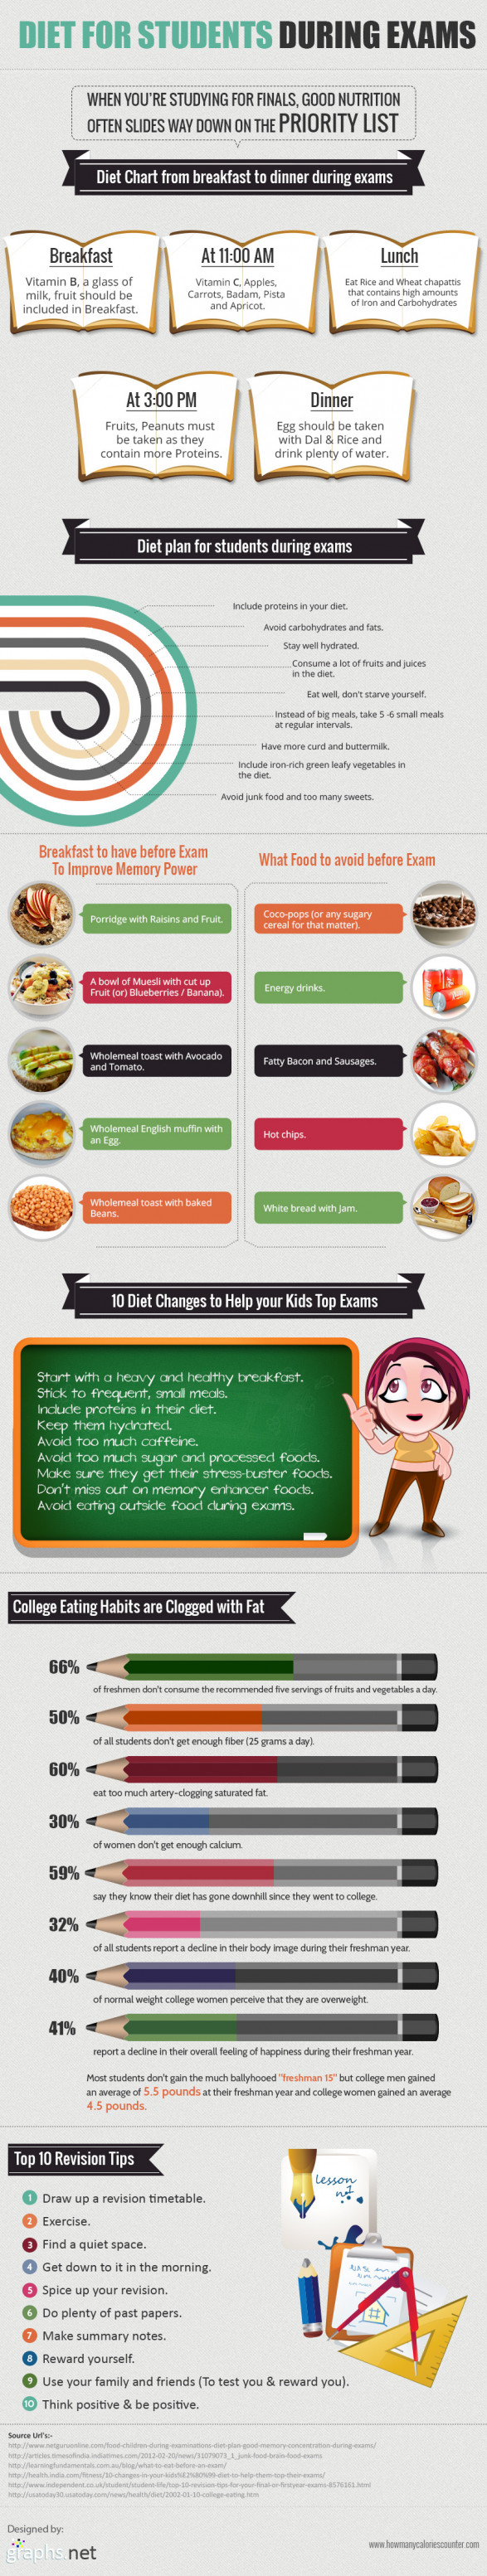 Diet for students